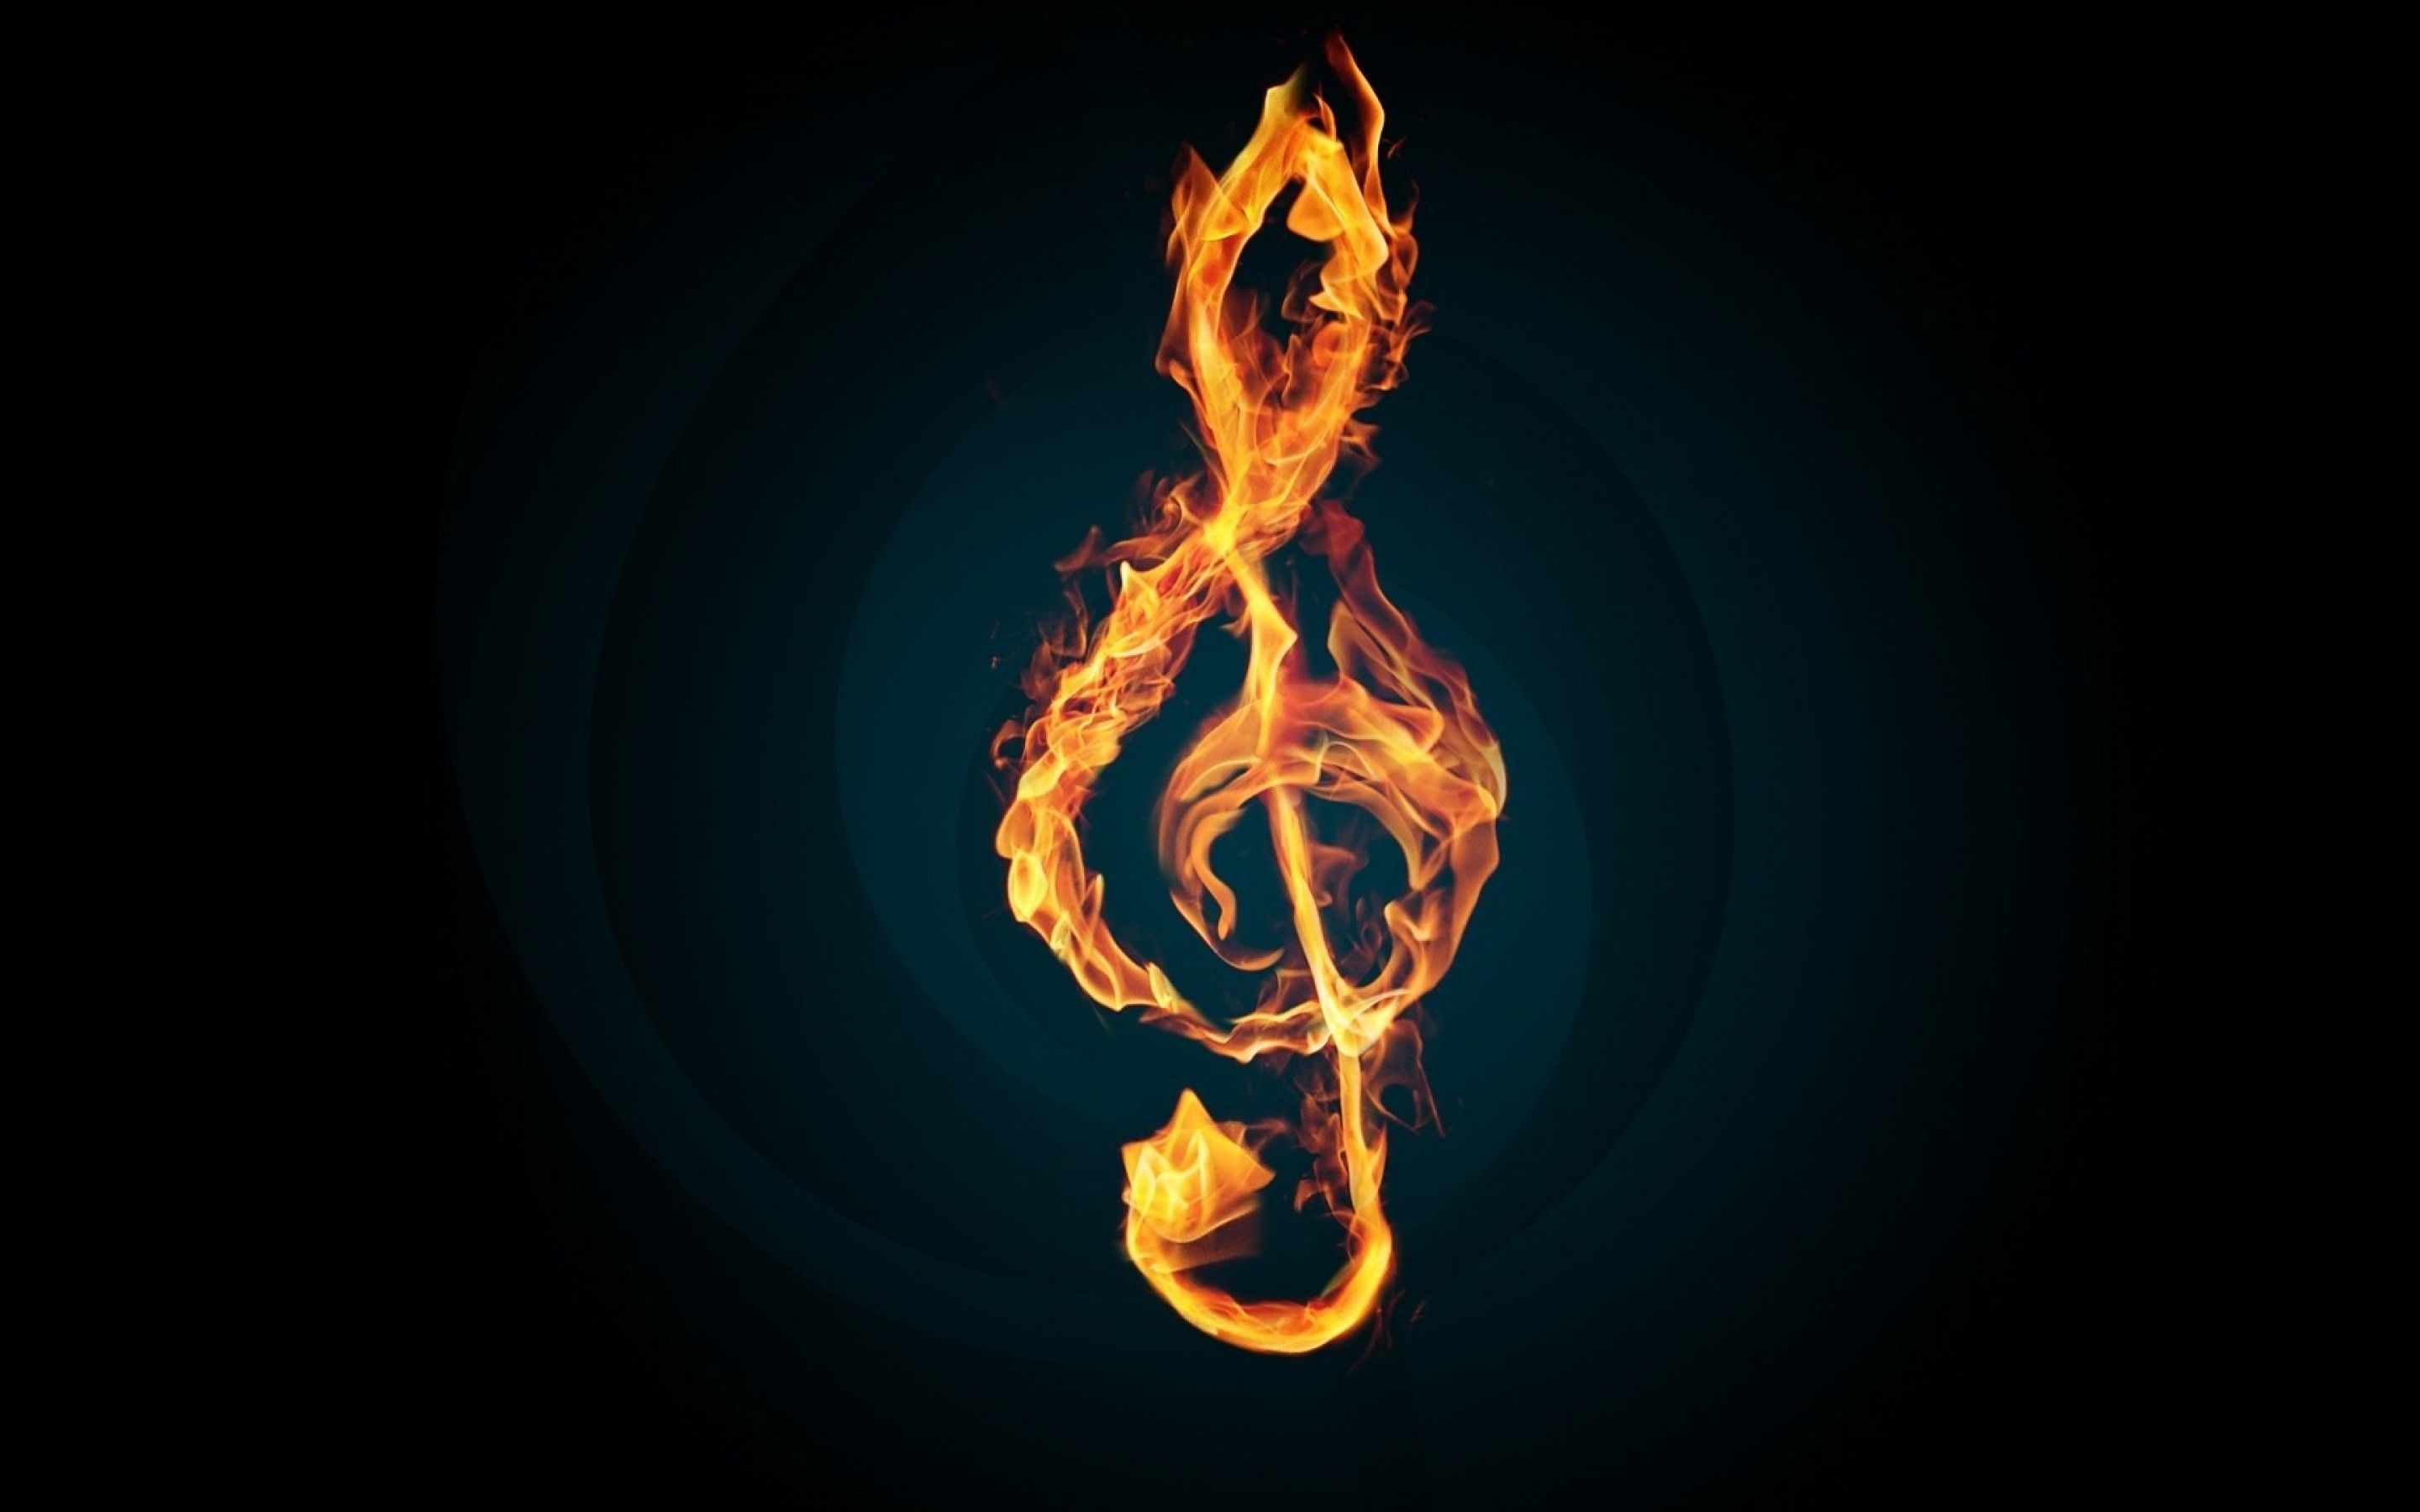 Fire Music Notes Animated Black Wallpaper Hd Free 38299020